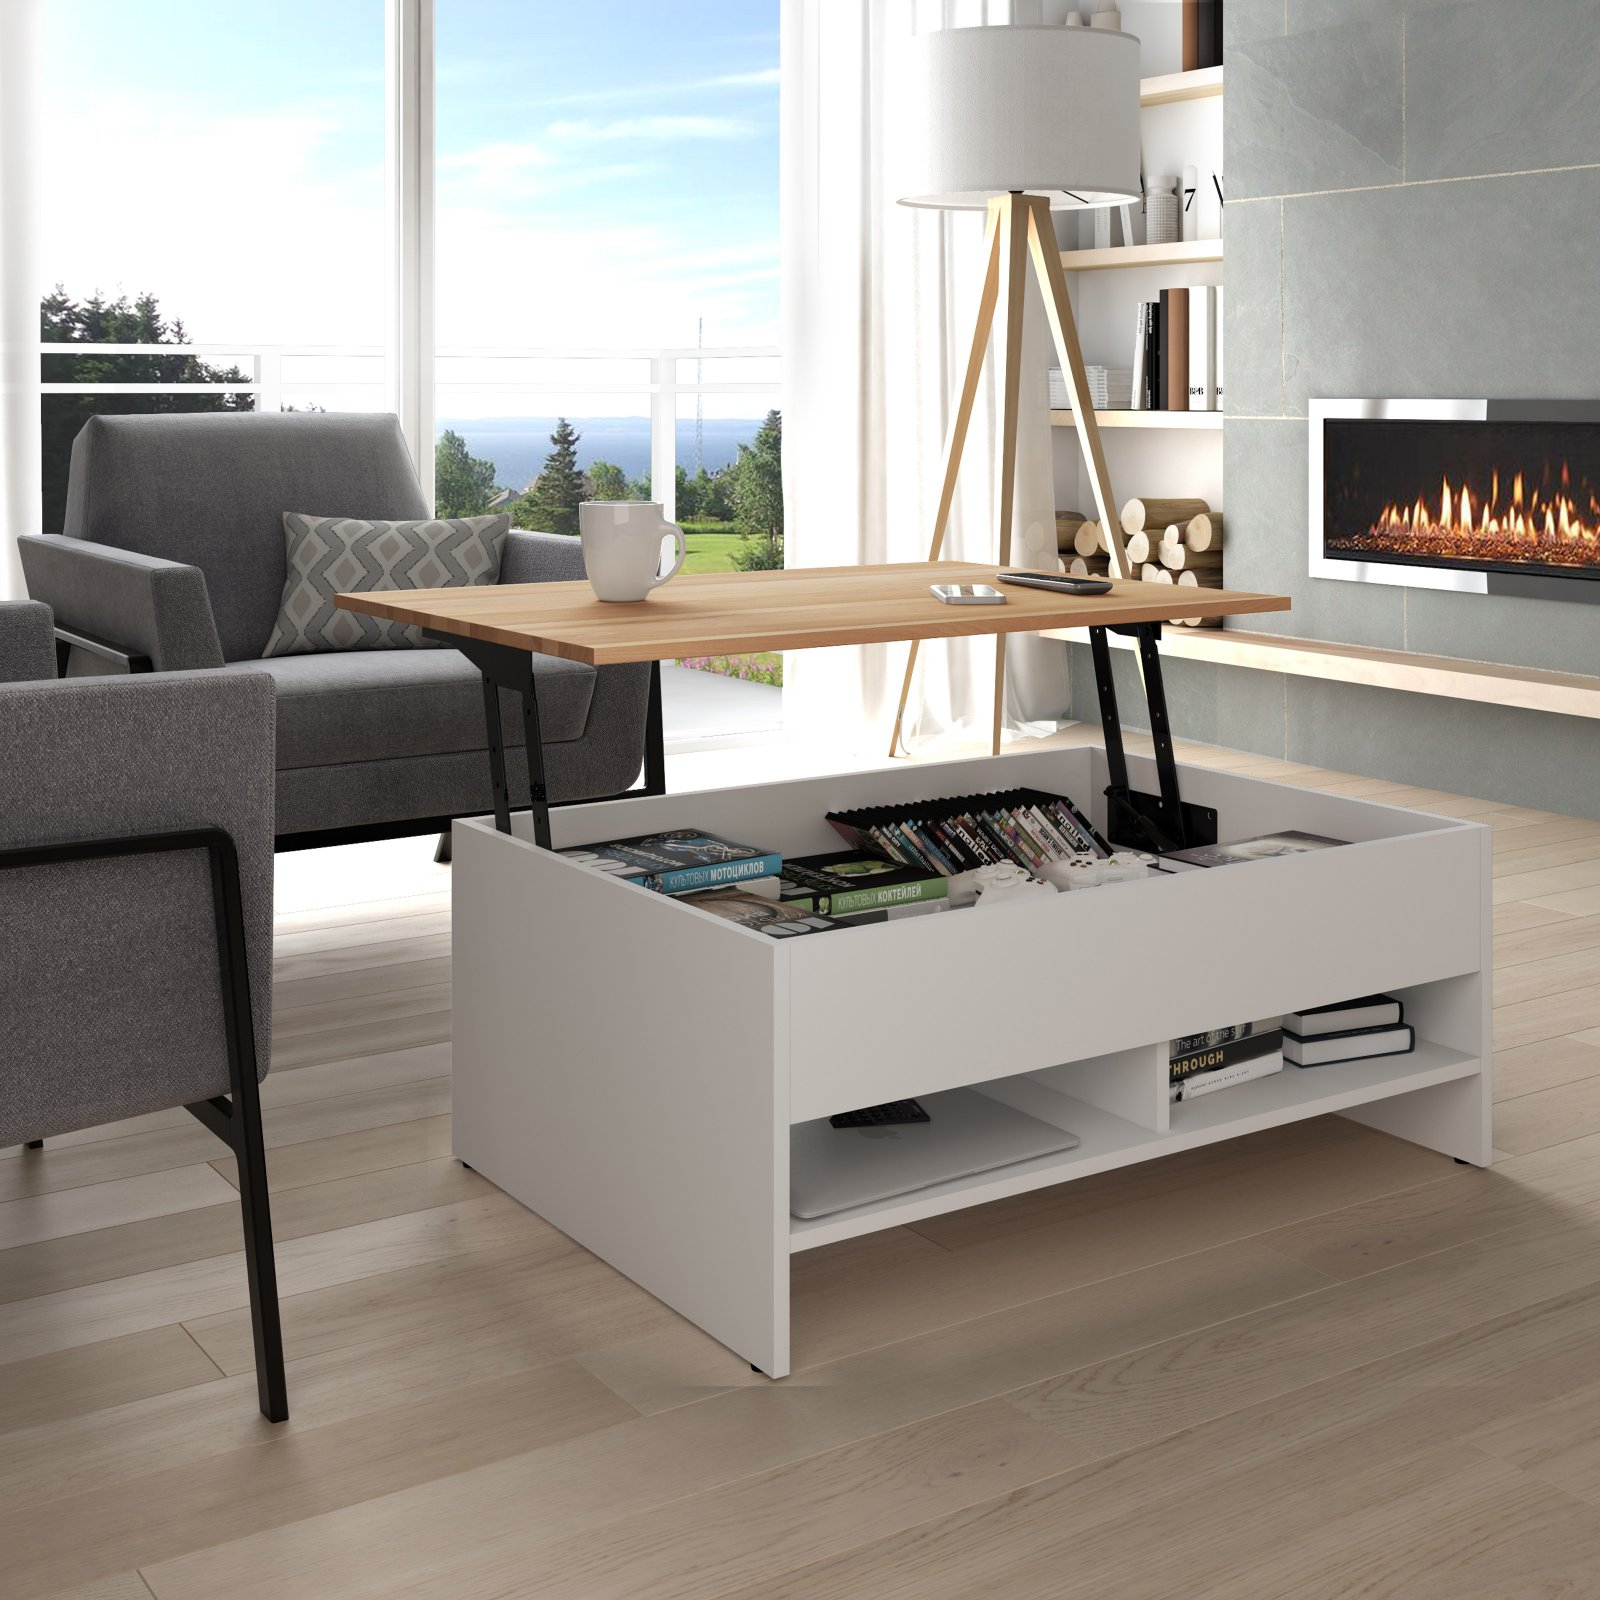 bestar small space storage coffee table with lift top walmart com